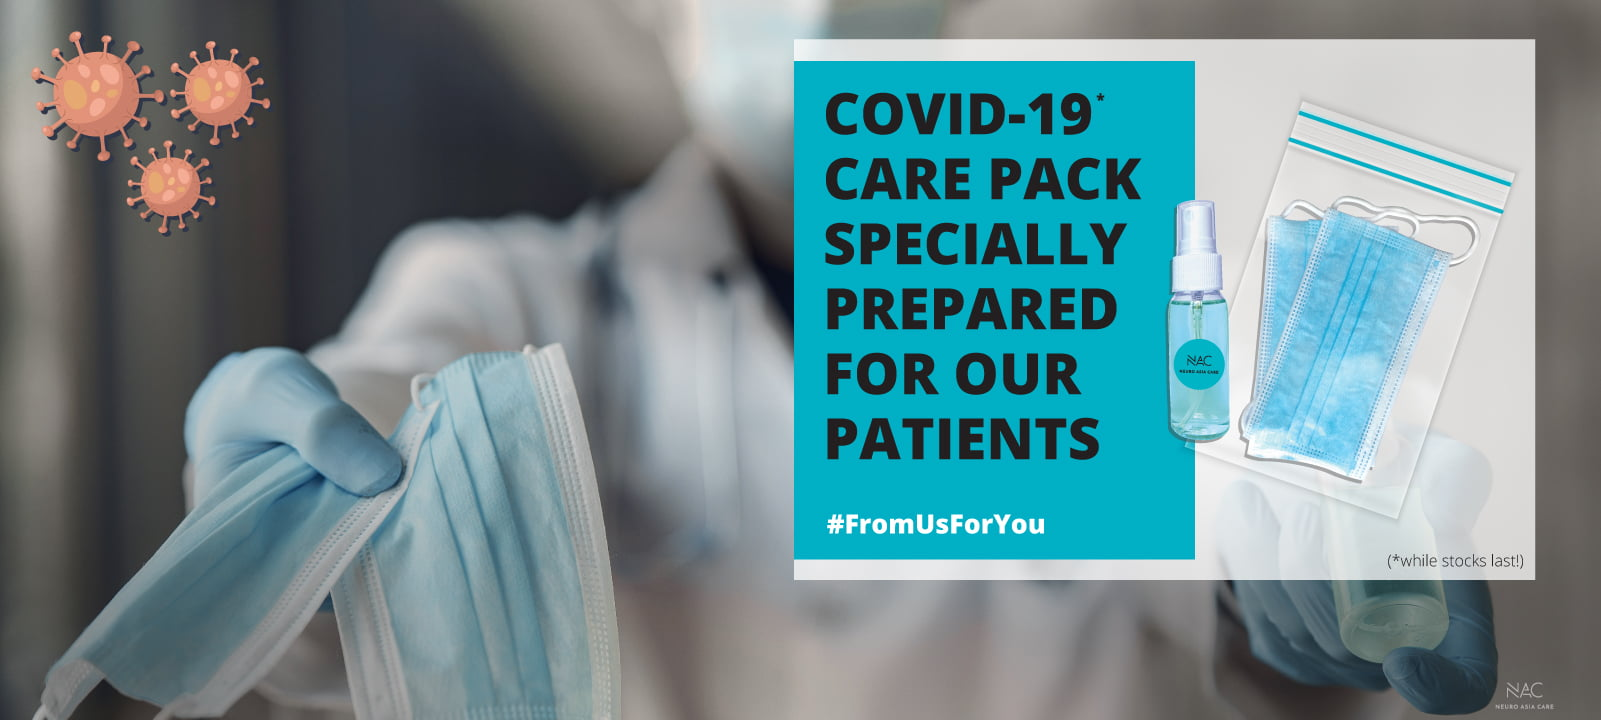 Covid-19 support for our patients